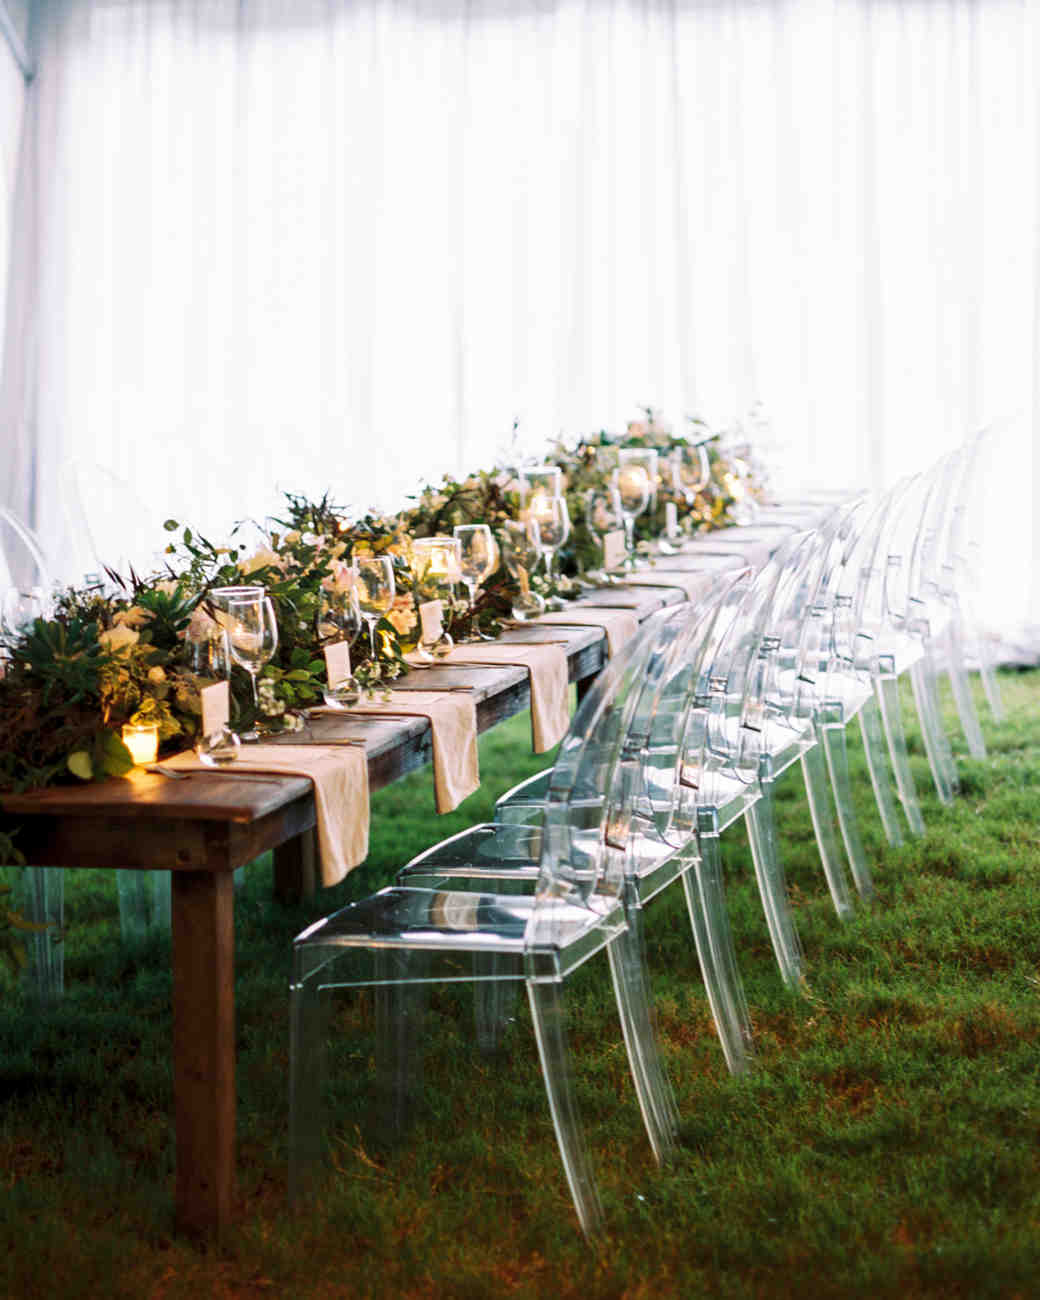 clear ghost chairs added an unexpected element to these otherwise familiar farm tables